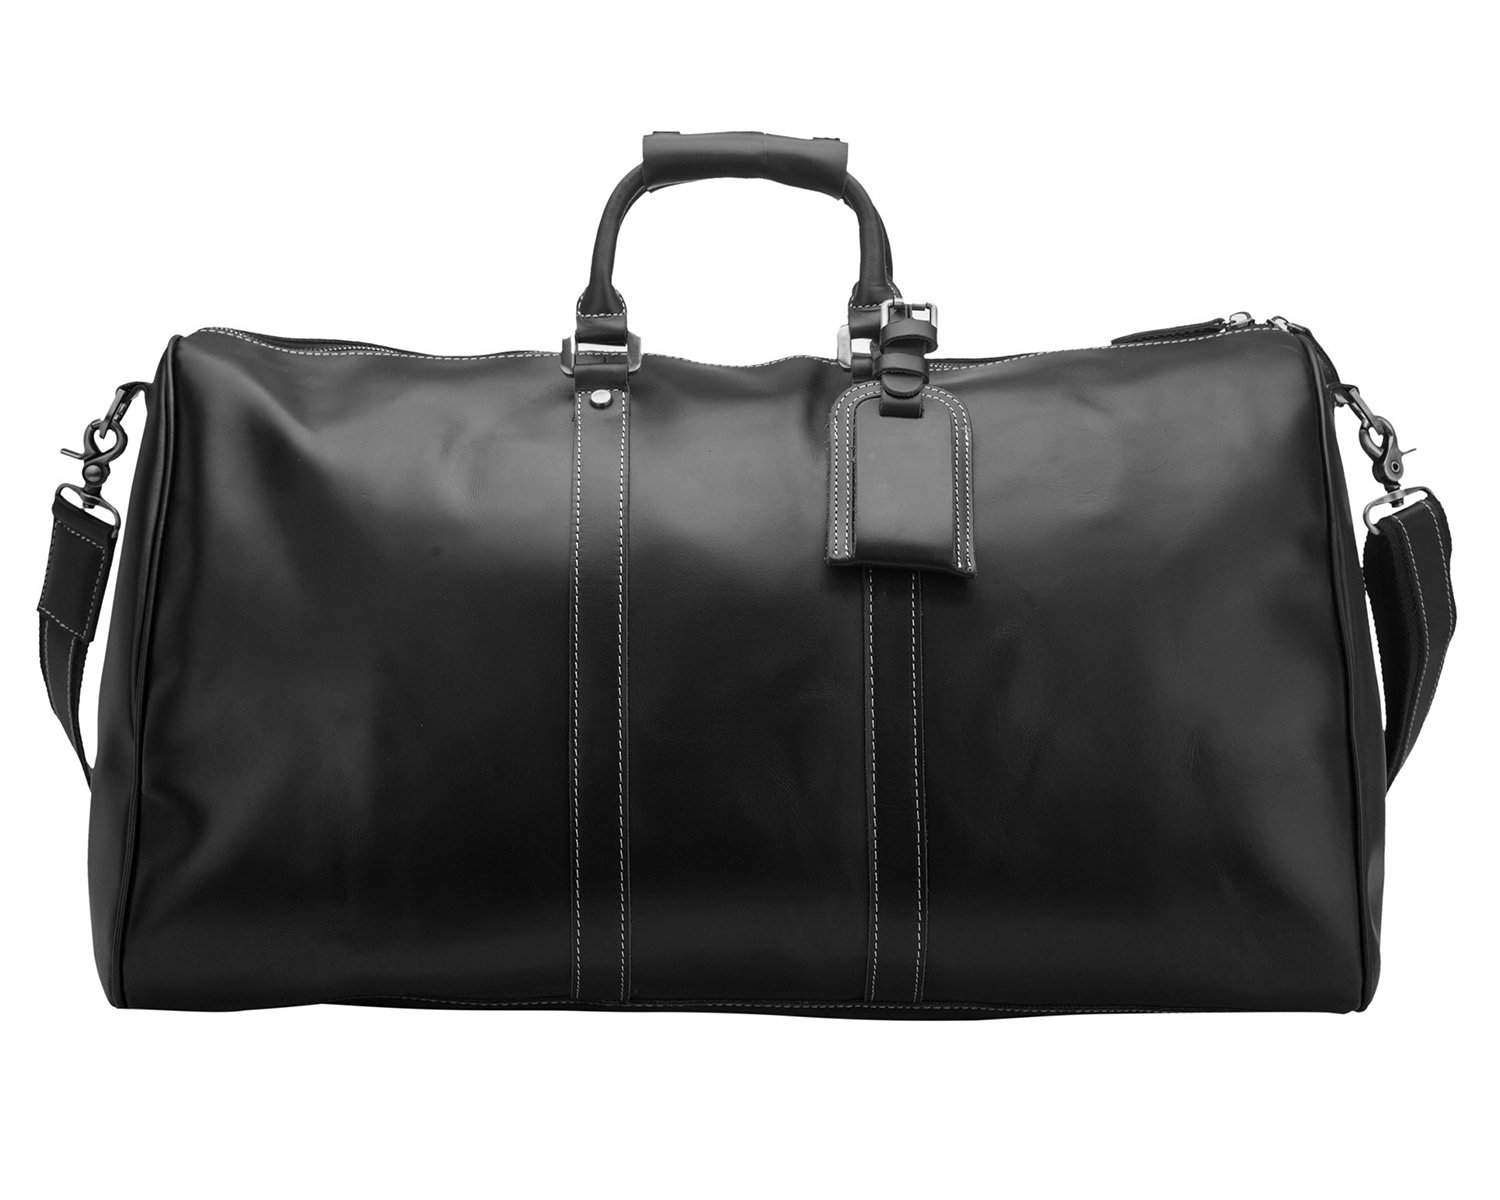 24e730505 BAIGIO Men Travel Bag Genuine Leather Tote Shoulder Luggage Weekend Duffle  Overnight Bags 23